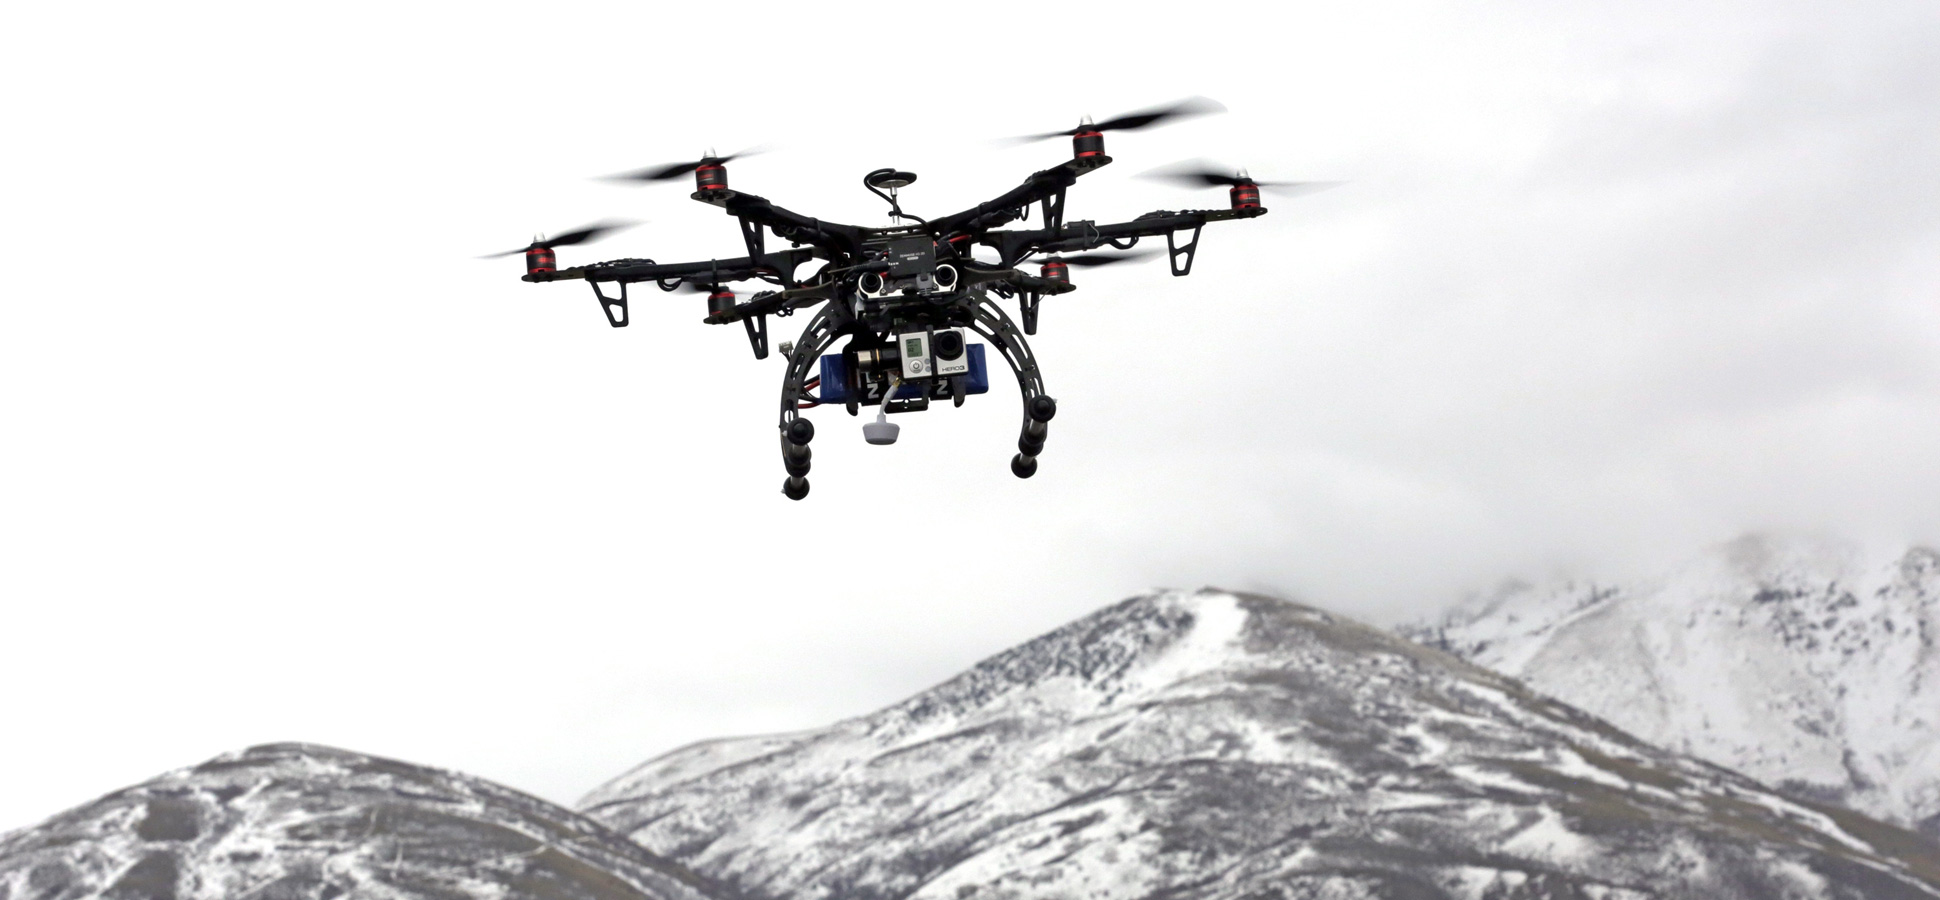 In the U.S., the Commercial Drone Industry Can't Get Off the Ground